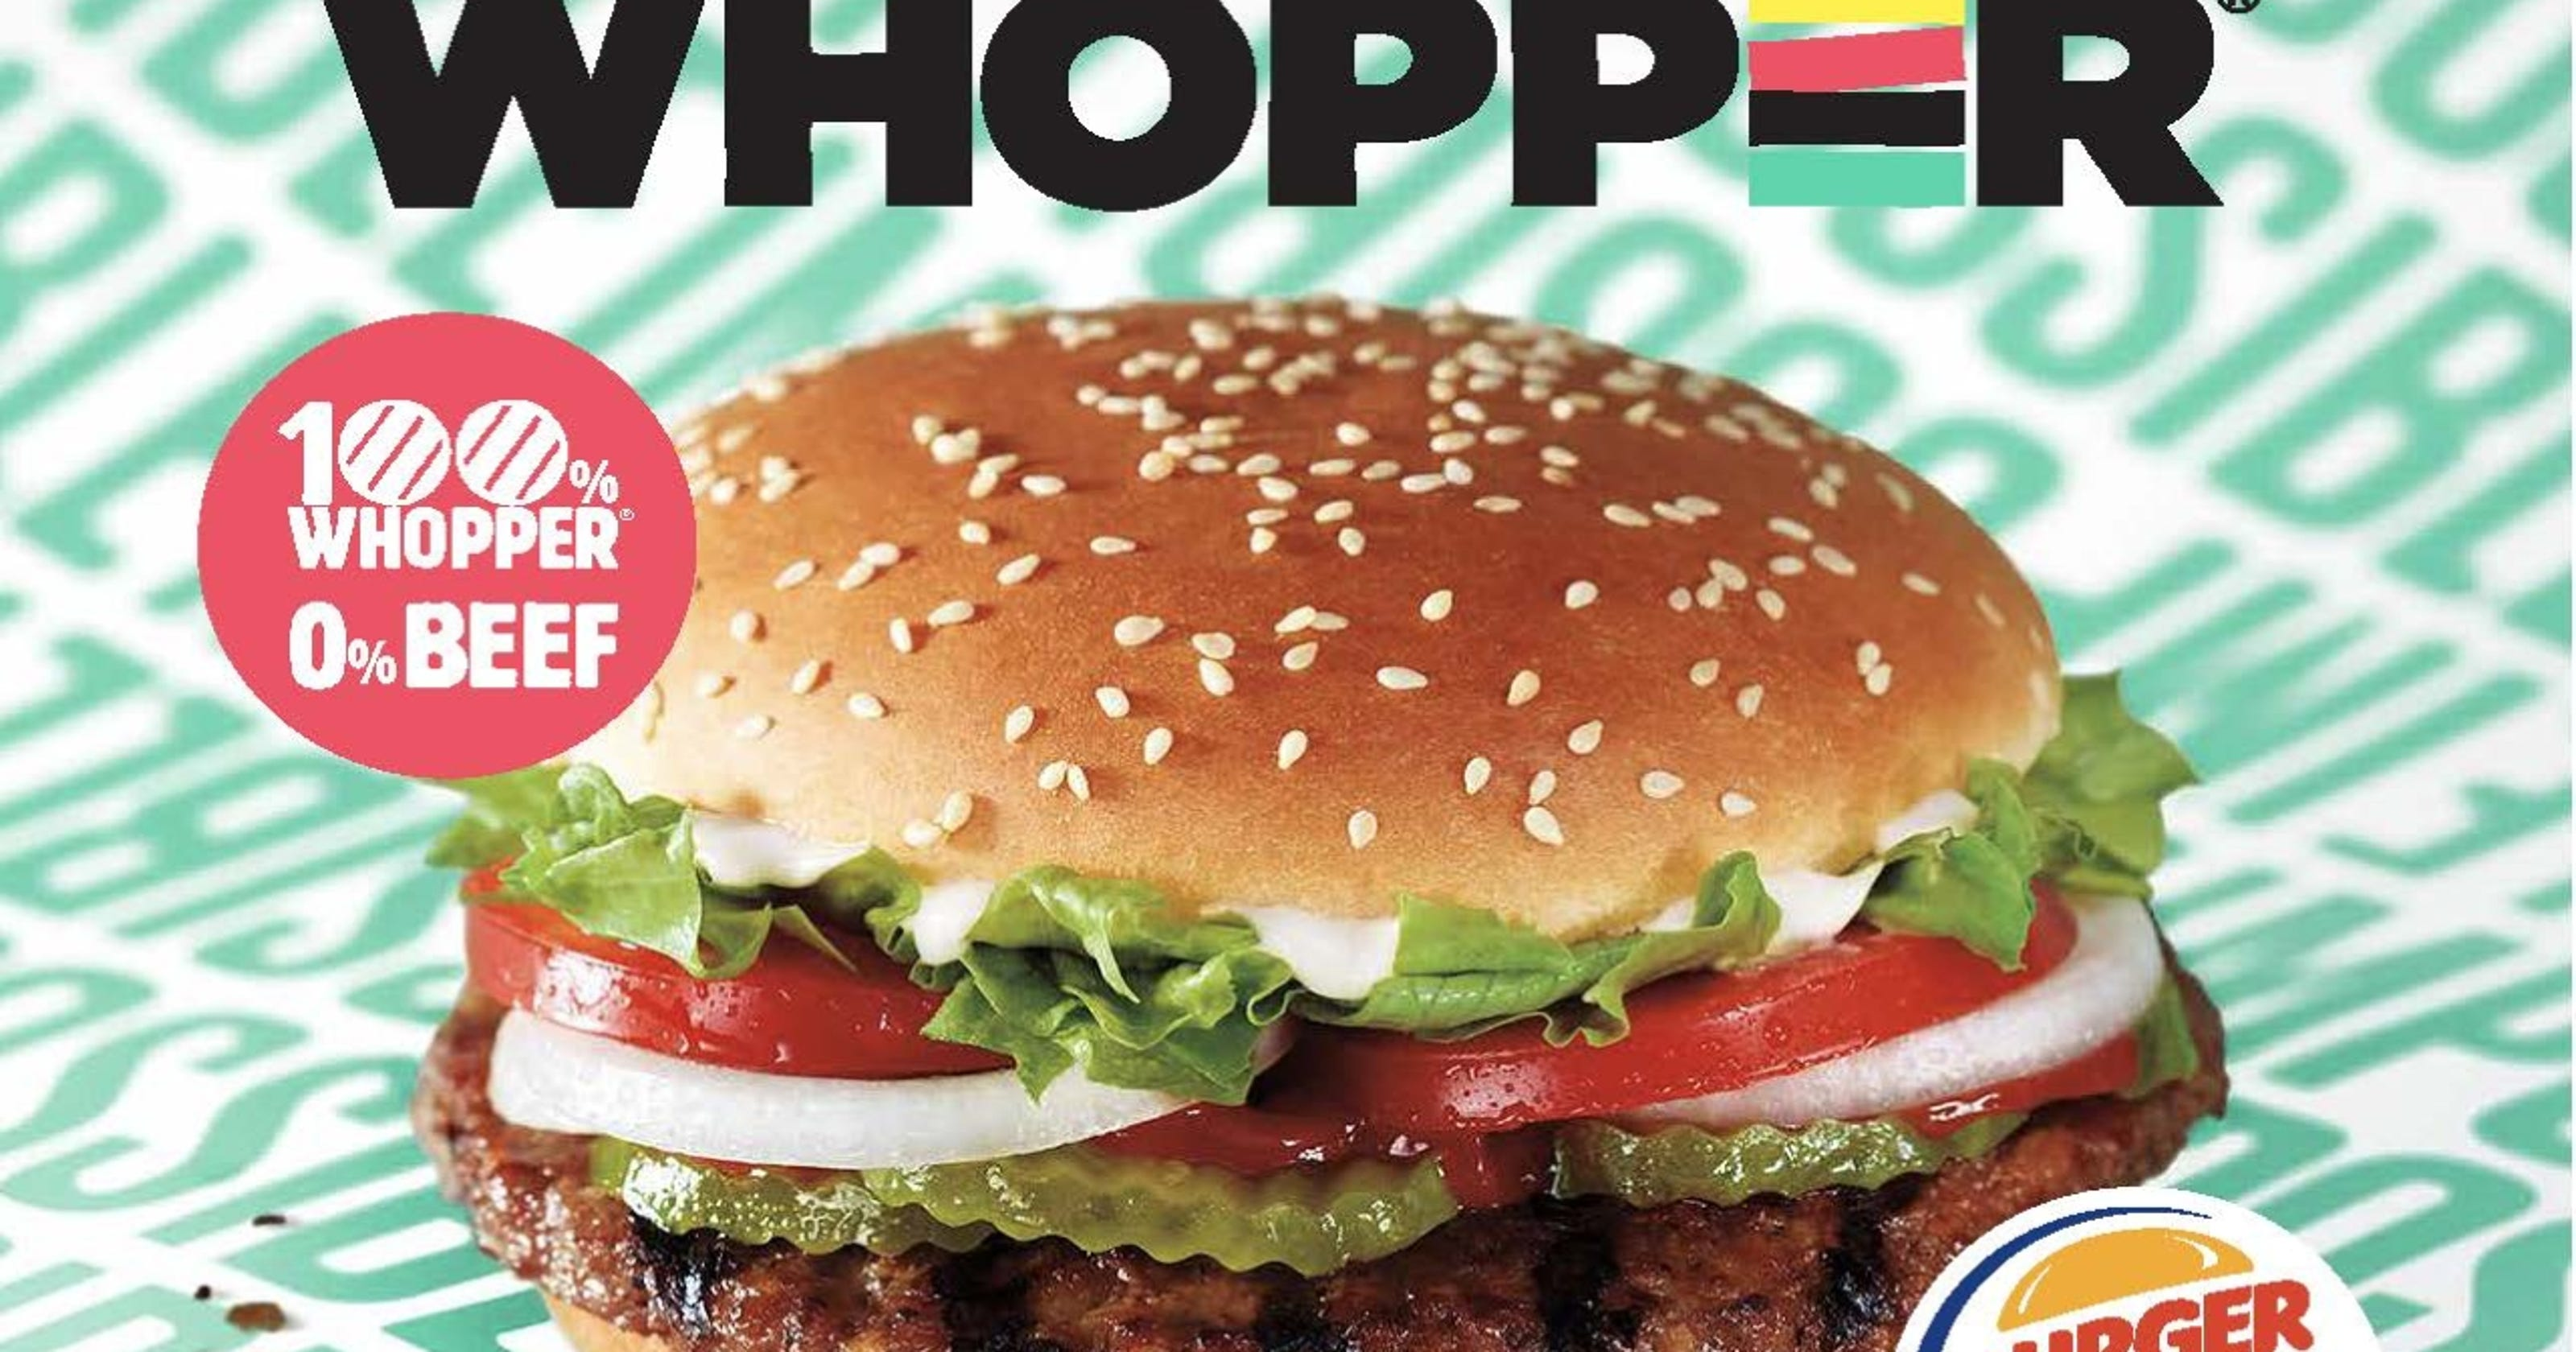 Burger King Impossible Whopper: Vegan burger to be released